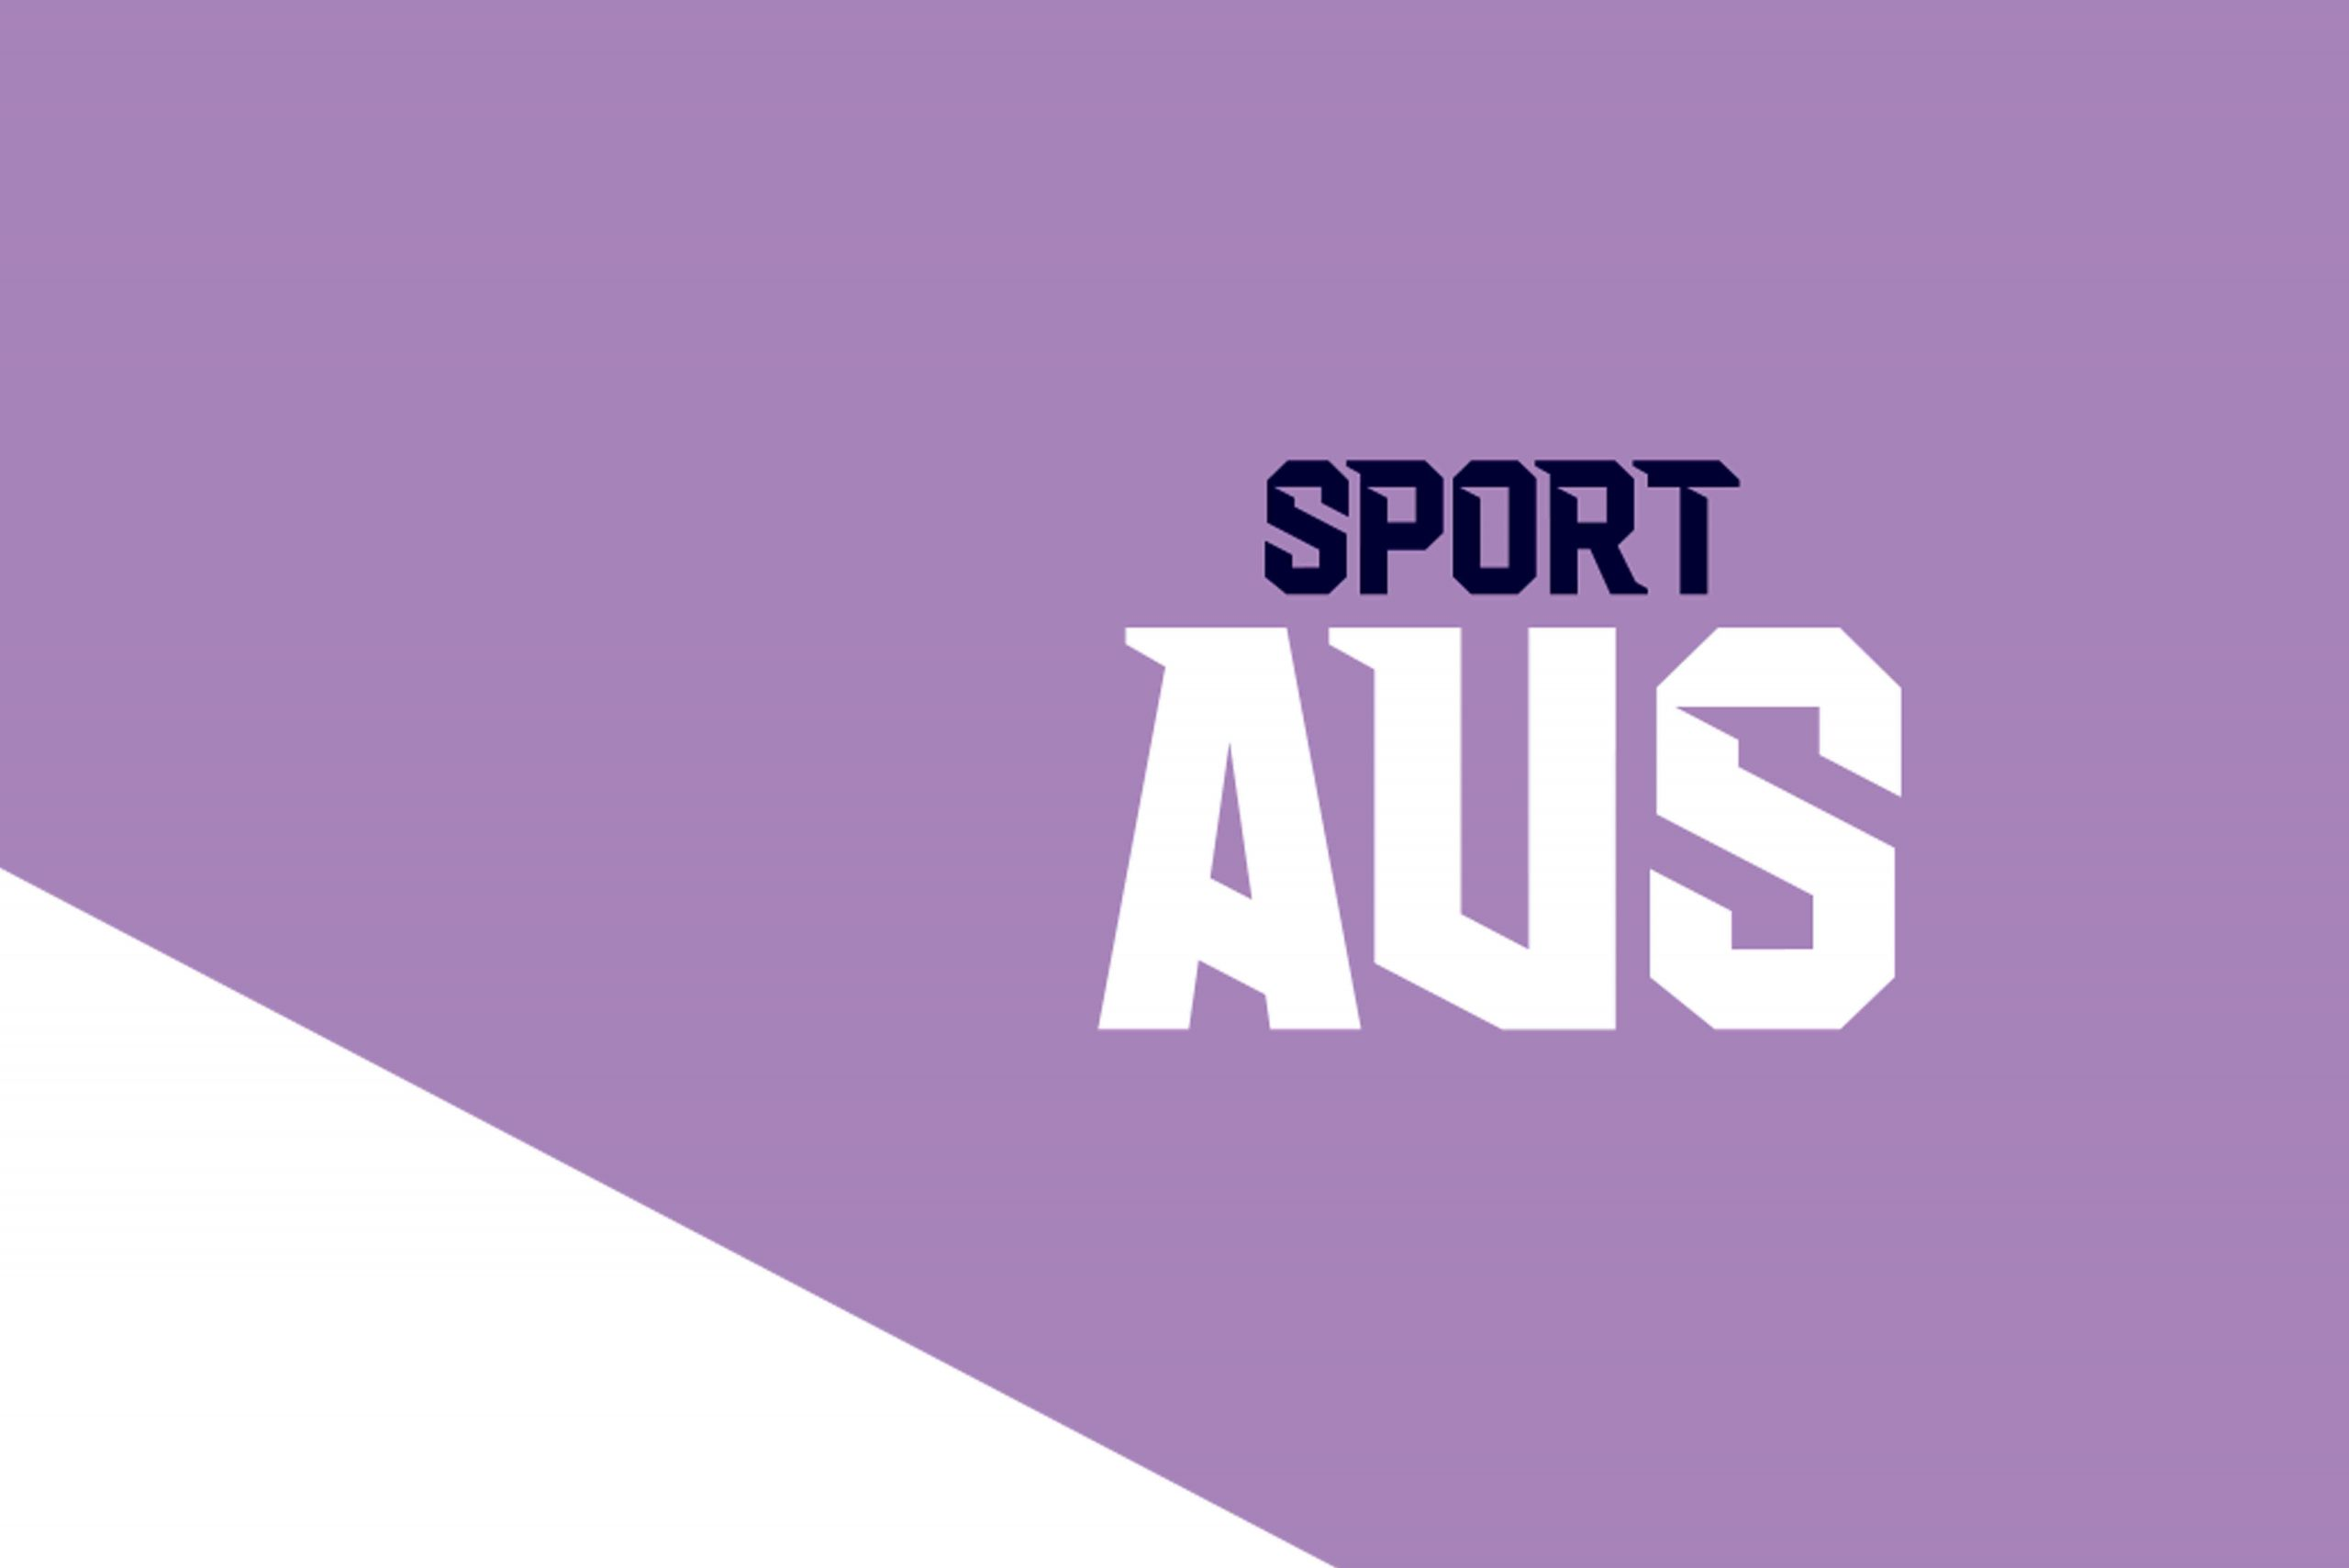 Image of text that reads Sport Aus on a purple and white background